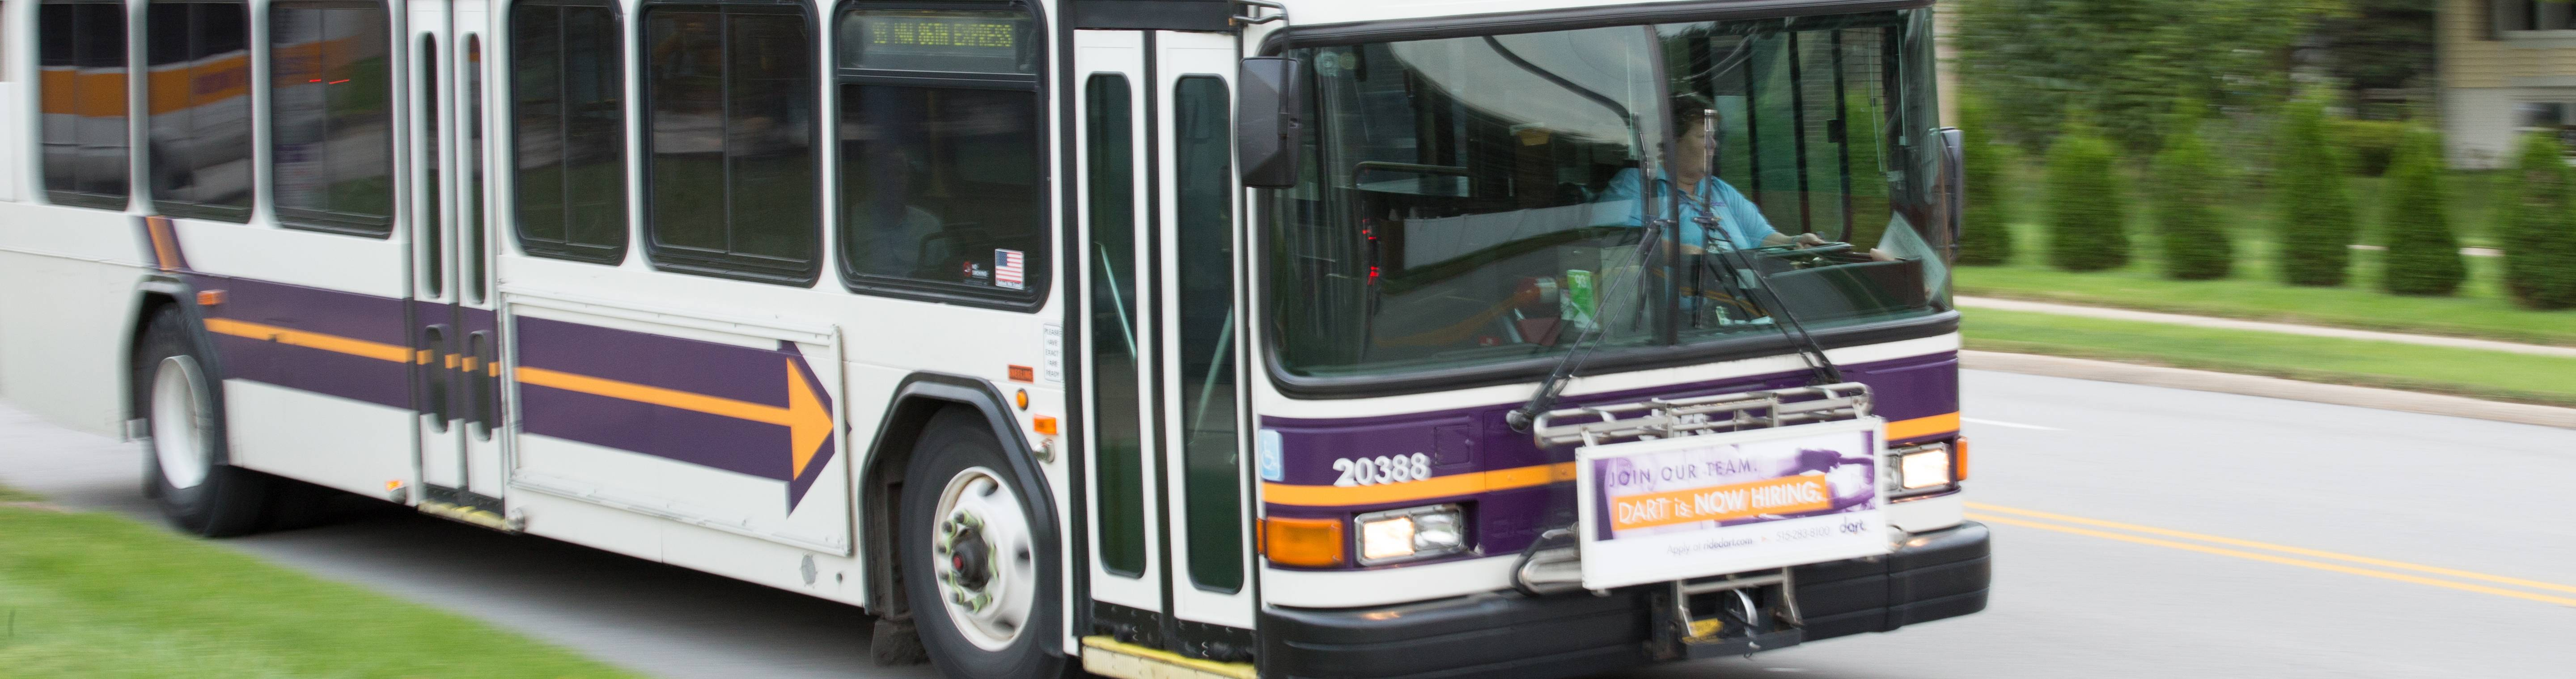 DART Providing Free Rides to Cooling Centers Due to Extreme Heat